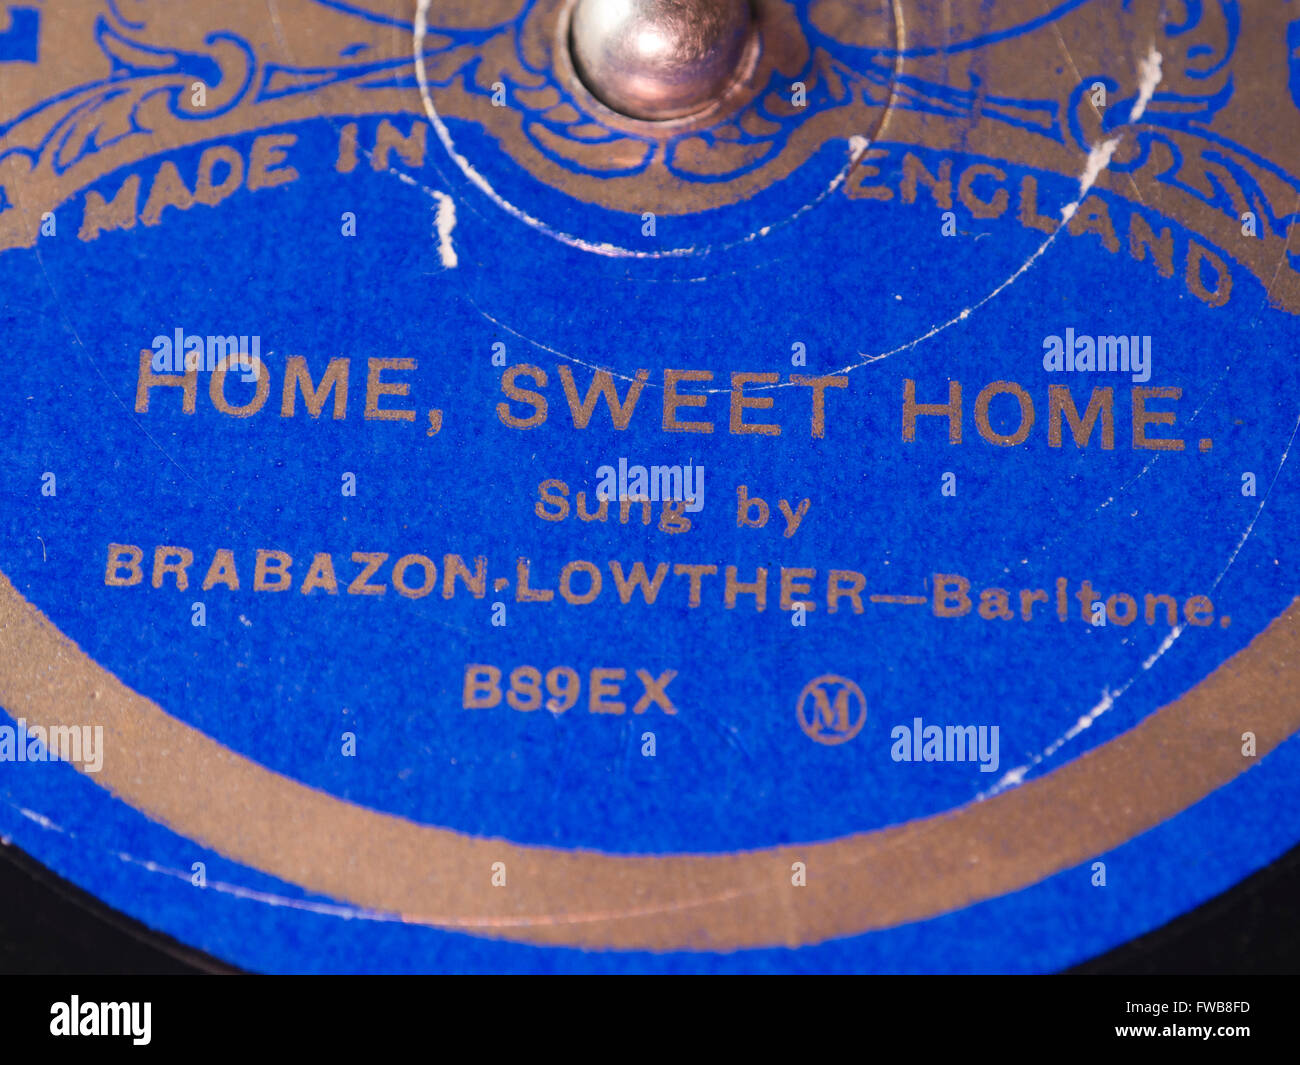 Linguaphone record language course, English songs, old shellac record 'Home sweet home' Brabazon Lowther - Stock Image